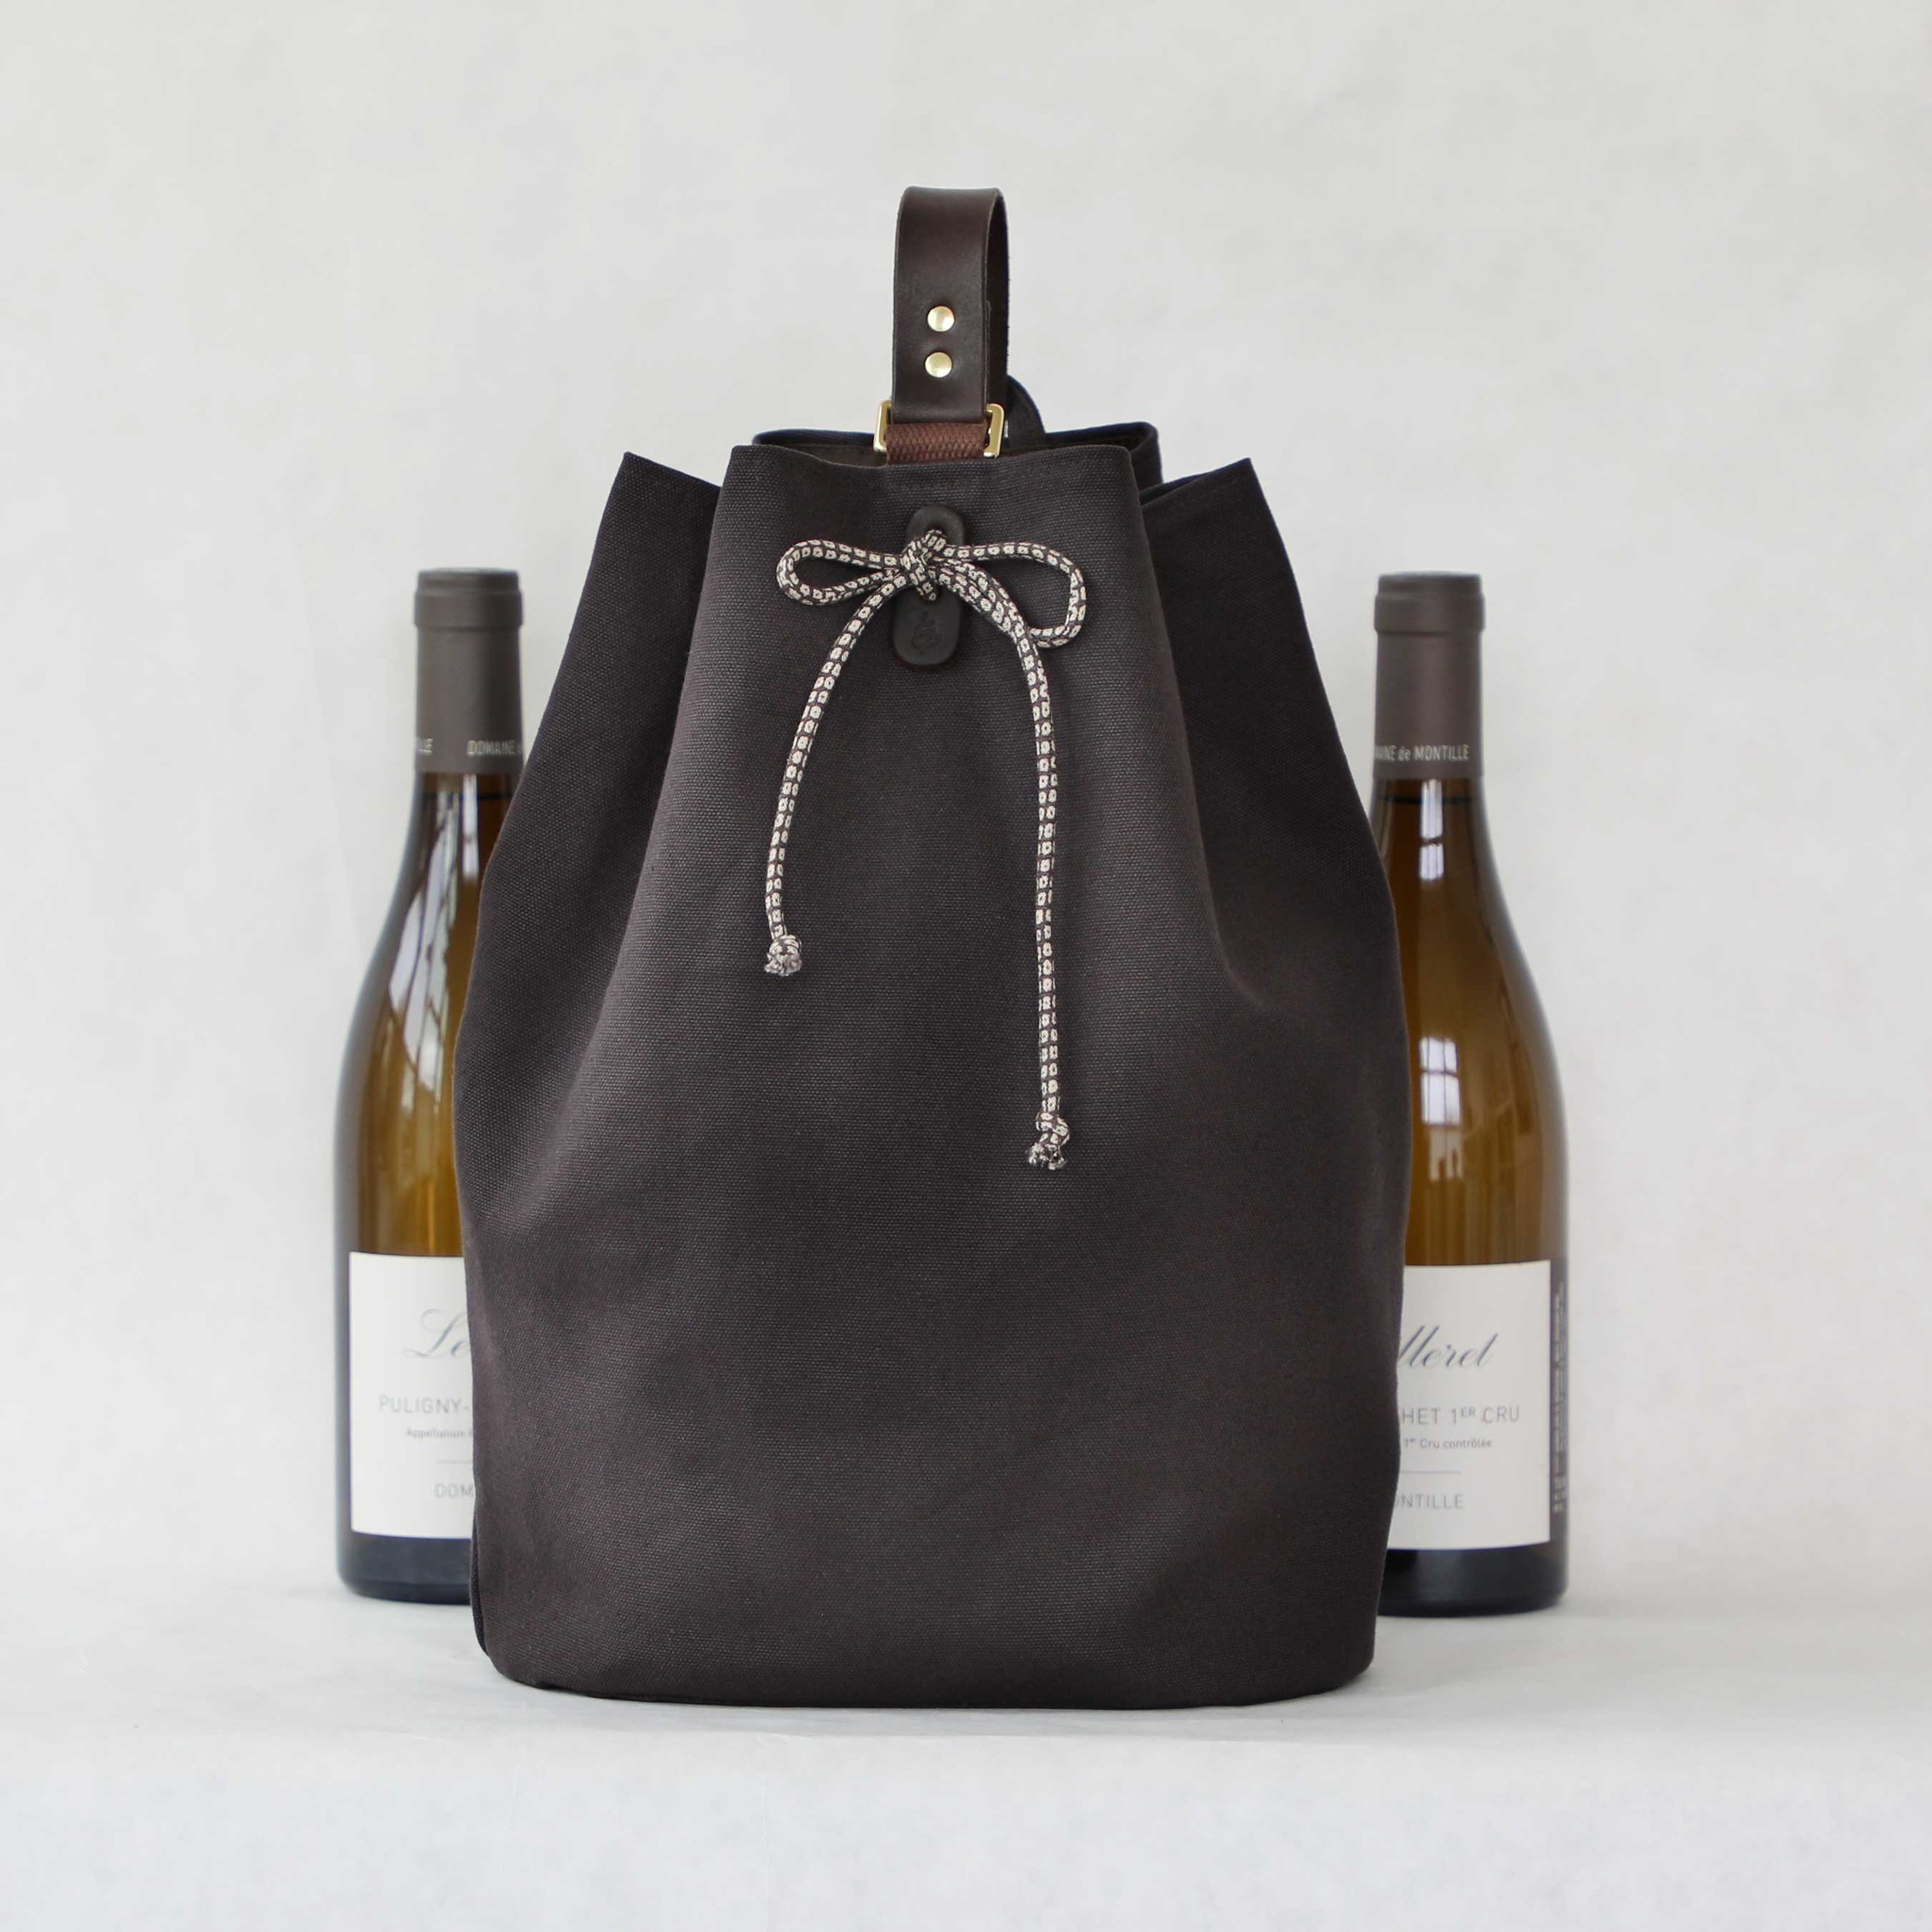 Larkspur 2-Bottle Wine Carrier $145